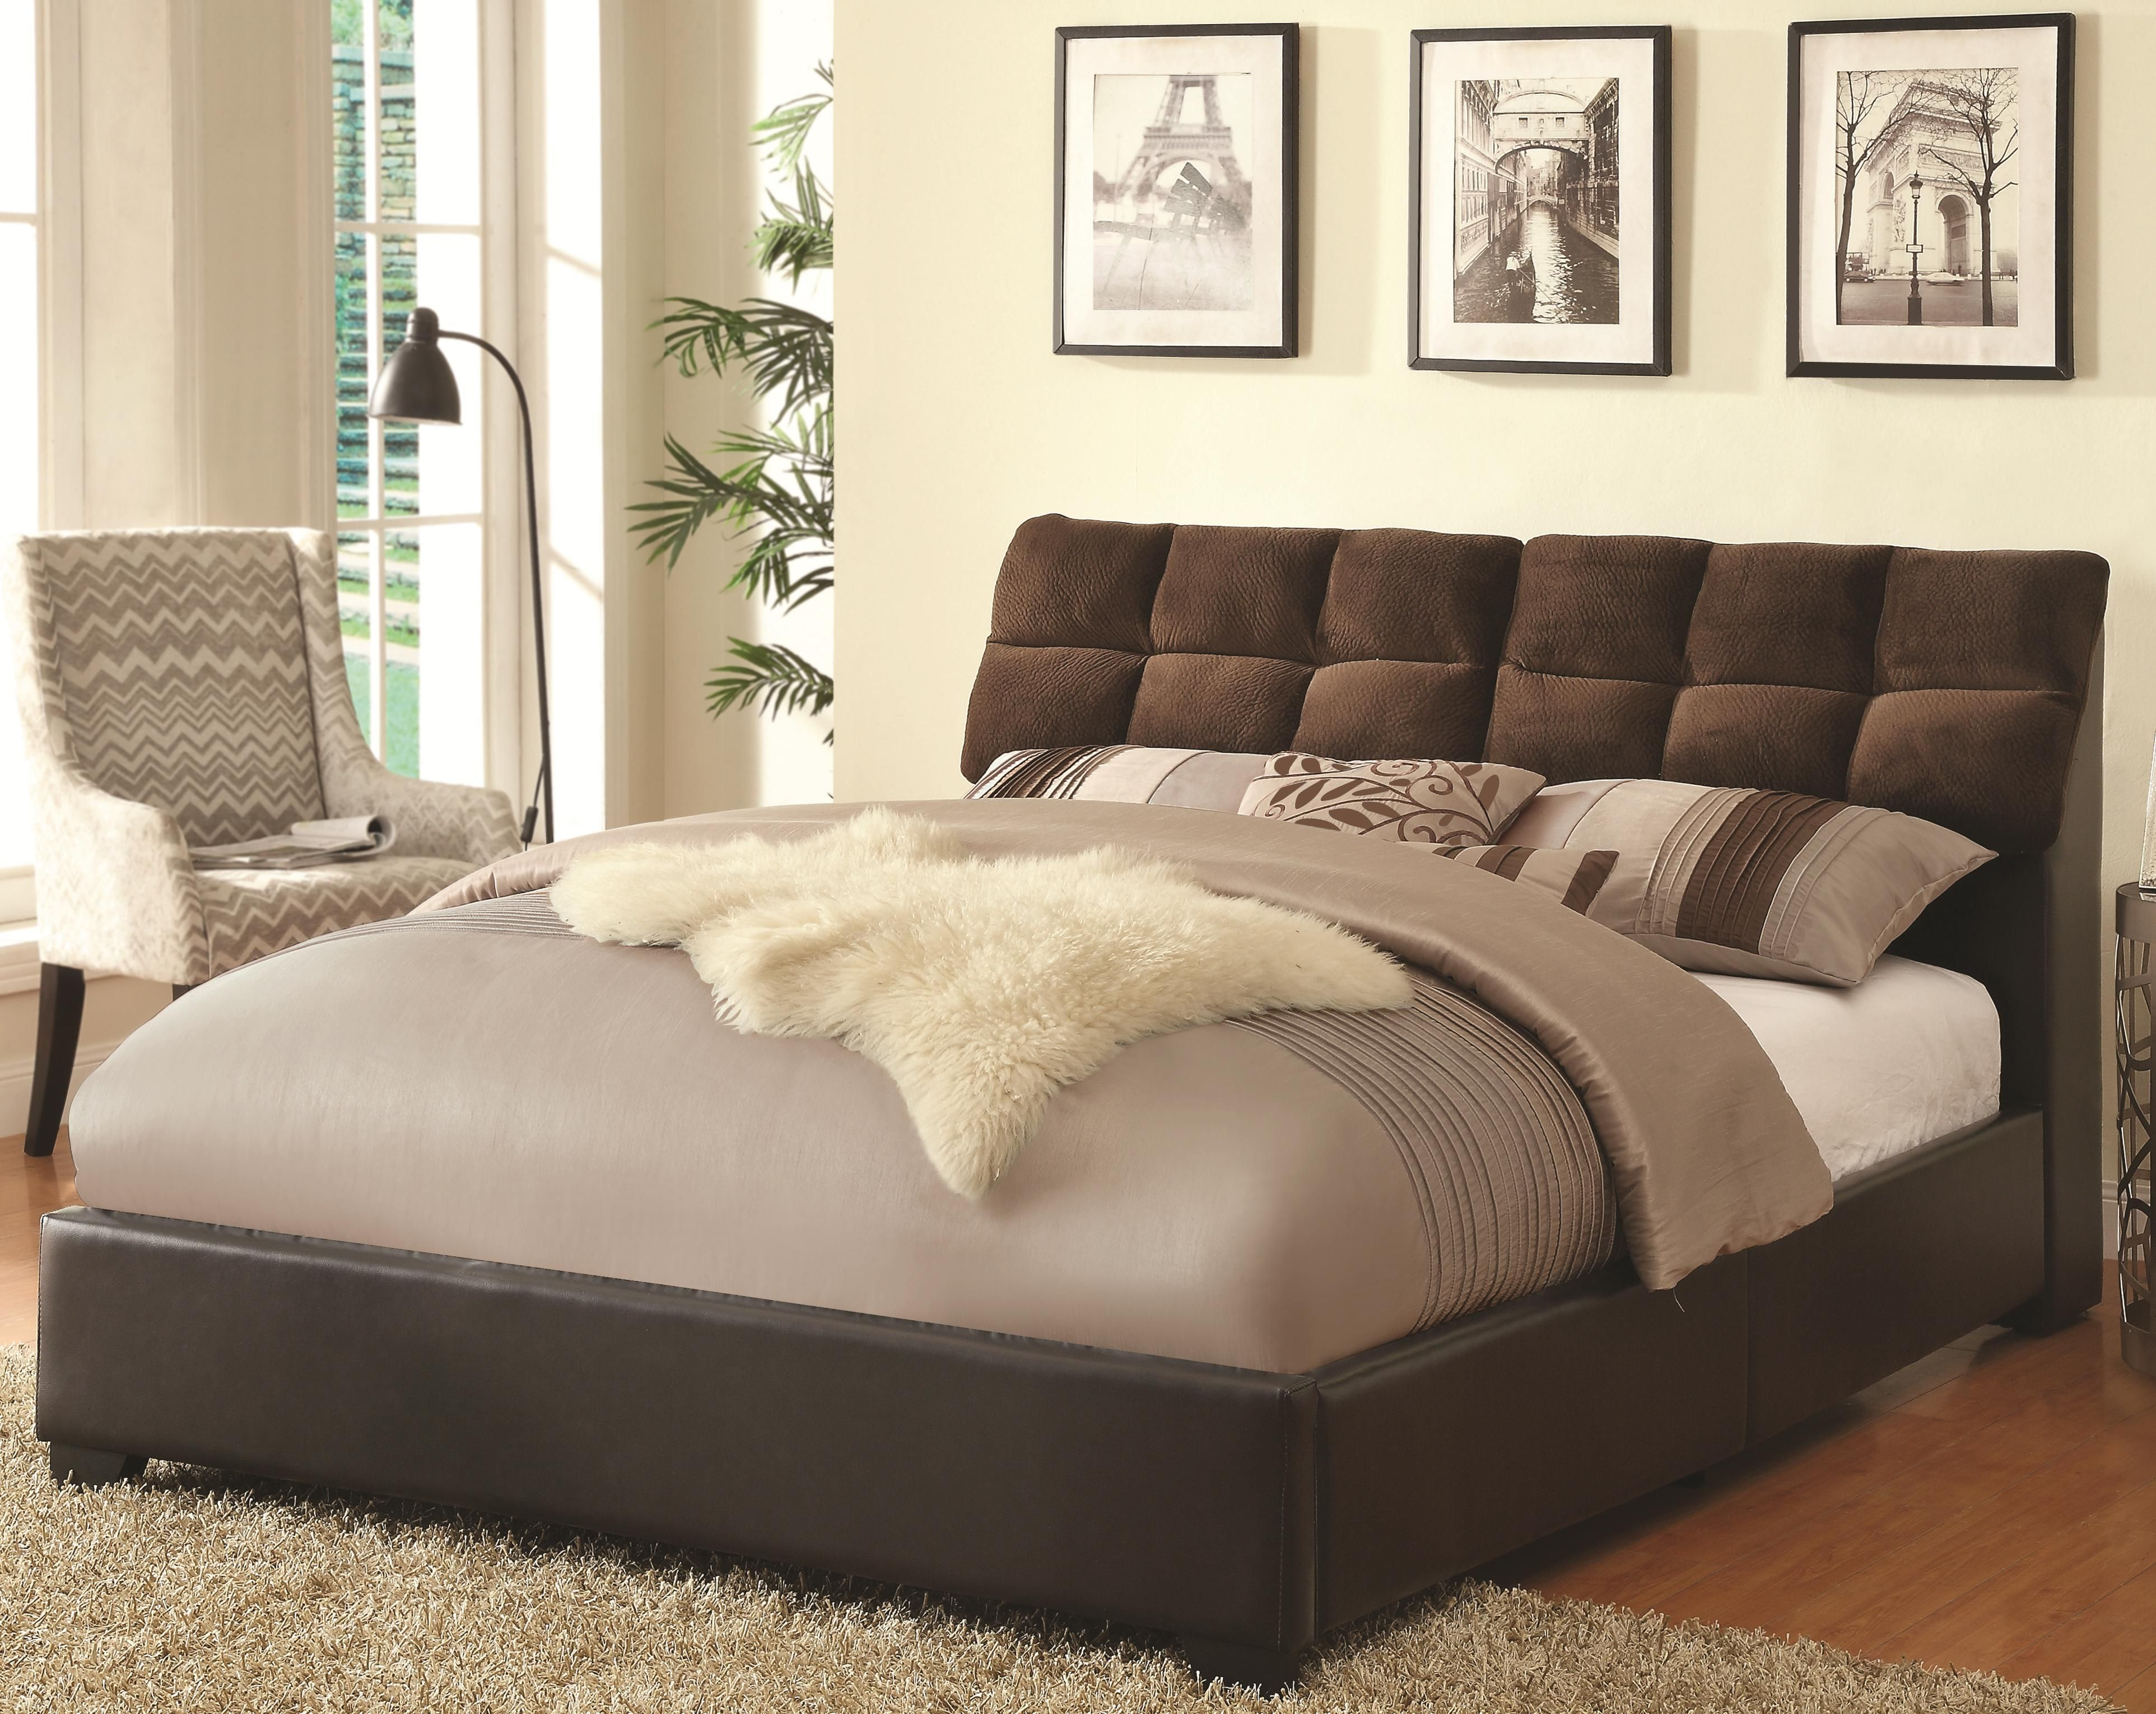 Upholstered Beds Queen Upholstered Bed by Coaster